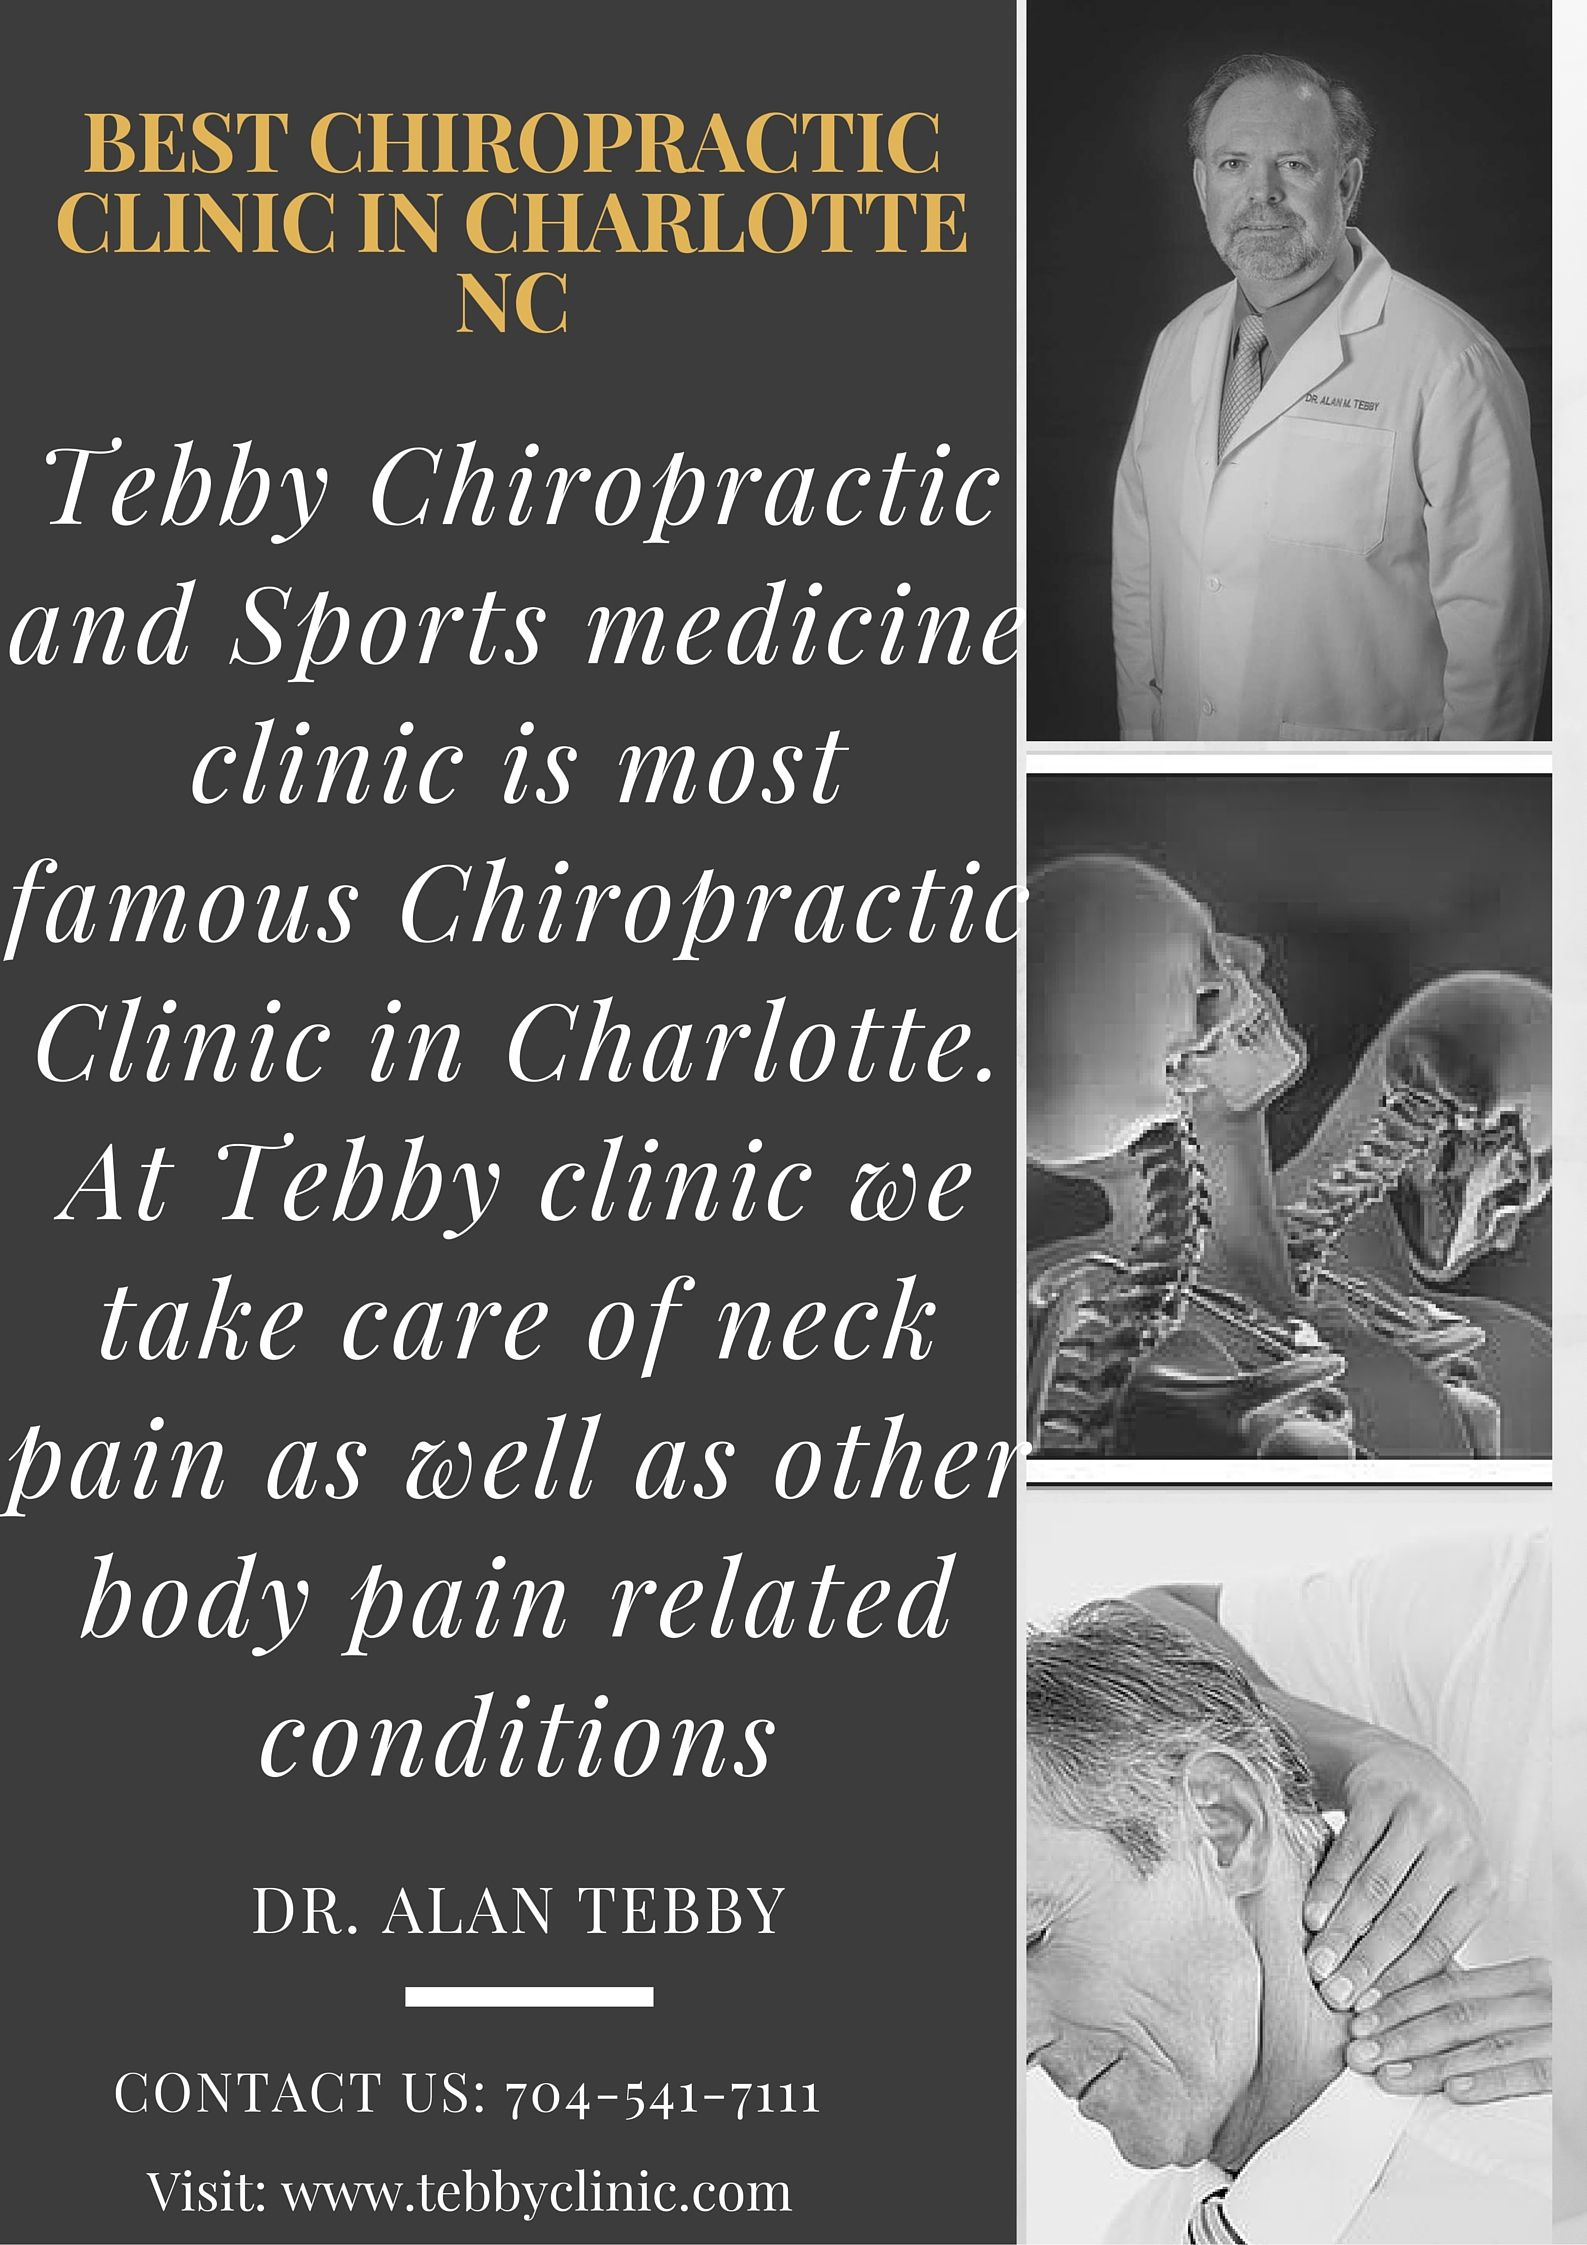 tebby chiropractic and sports medicine is one of the most